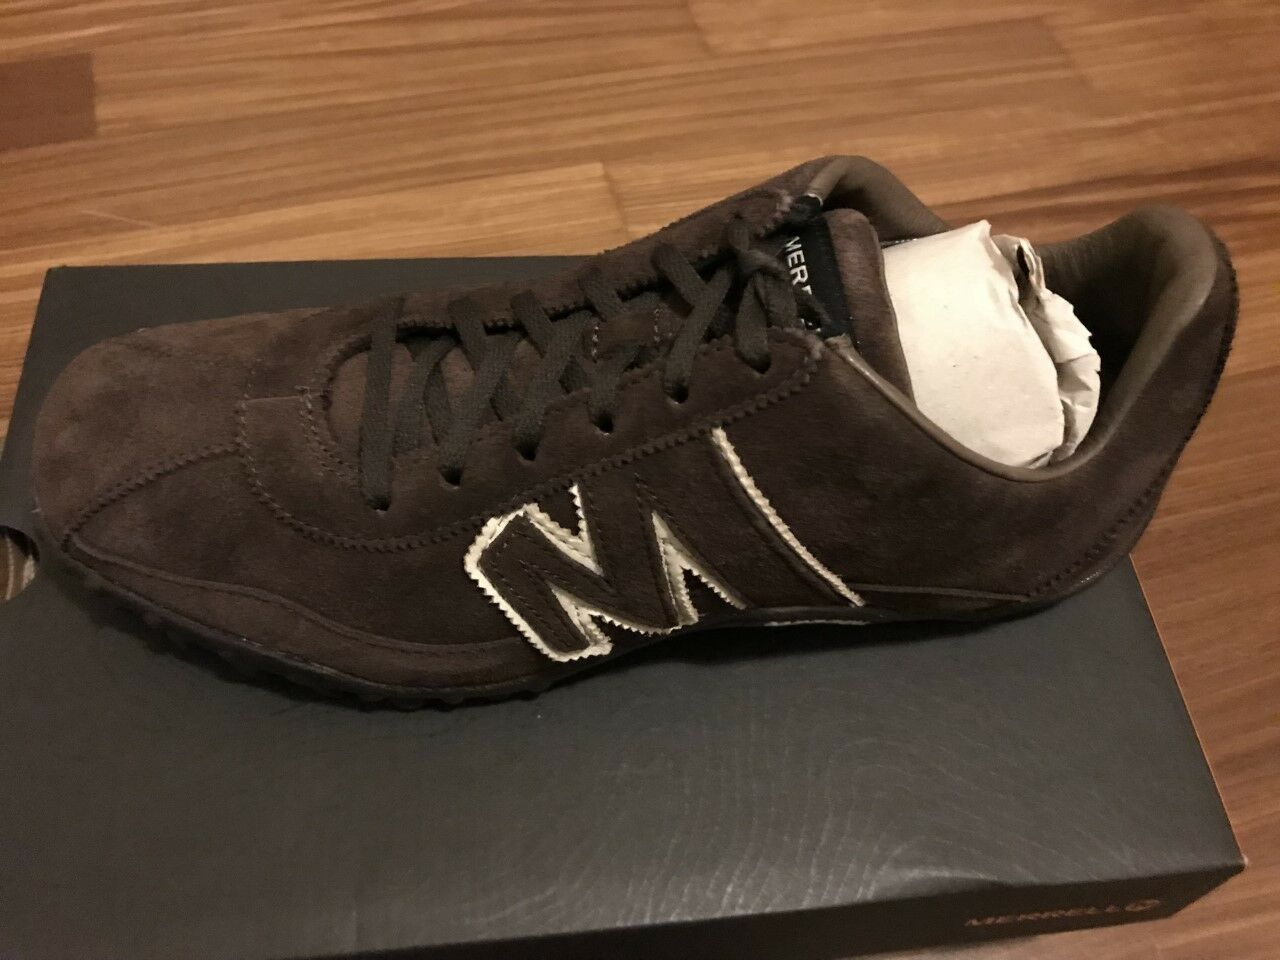 SNEAKER MERRELL SPRINT BLAST LEATHER CHOCOLATE - NR 45 - NUOVE - J598659